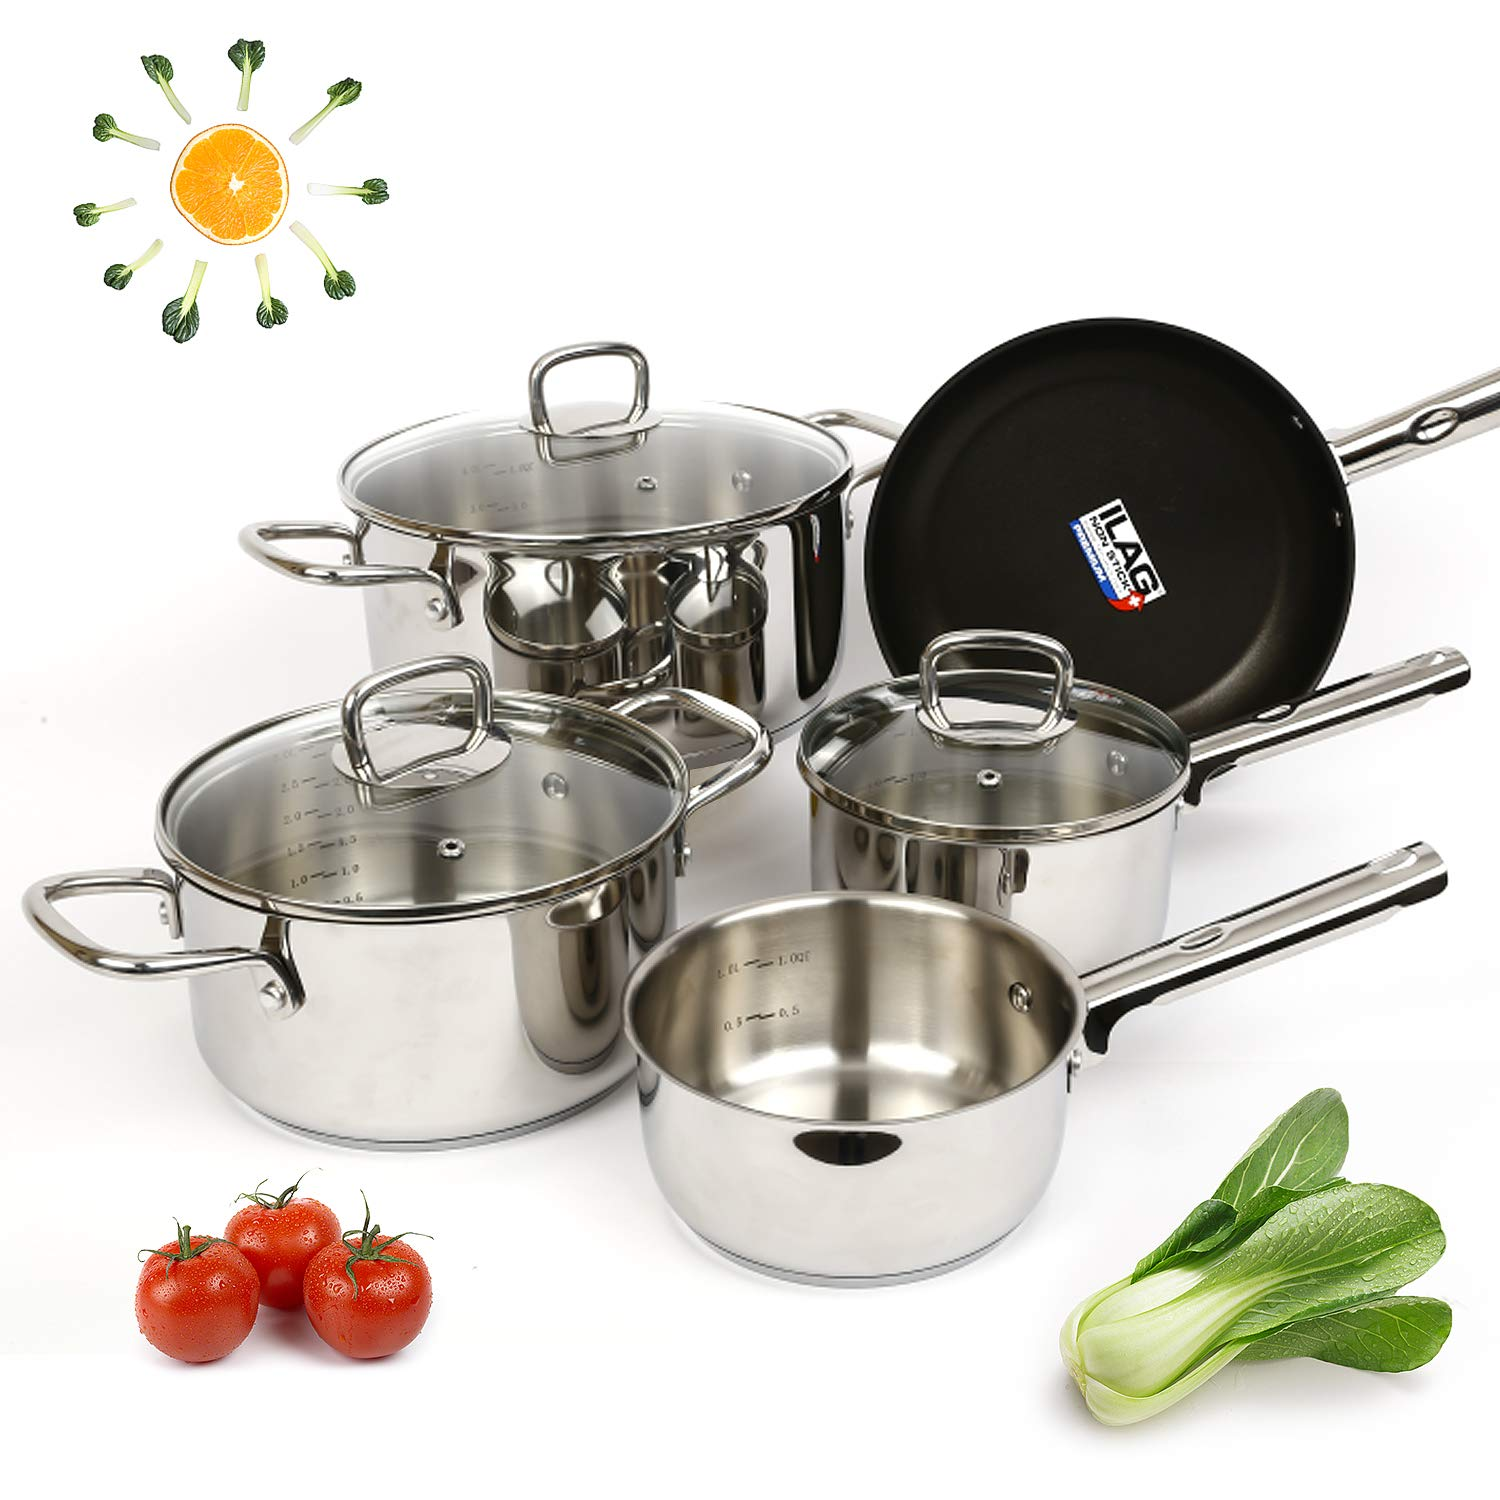 Viewee Cookware Sets Nonstick Pots and Pans Sets 18/10 Stainless Steel Kitchenware 8-Piece Dishwasher & Oven Safe Tri-Ply Saucepan Set with Lids, PFOA Free Compatible to Multi-Stove Top for Home